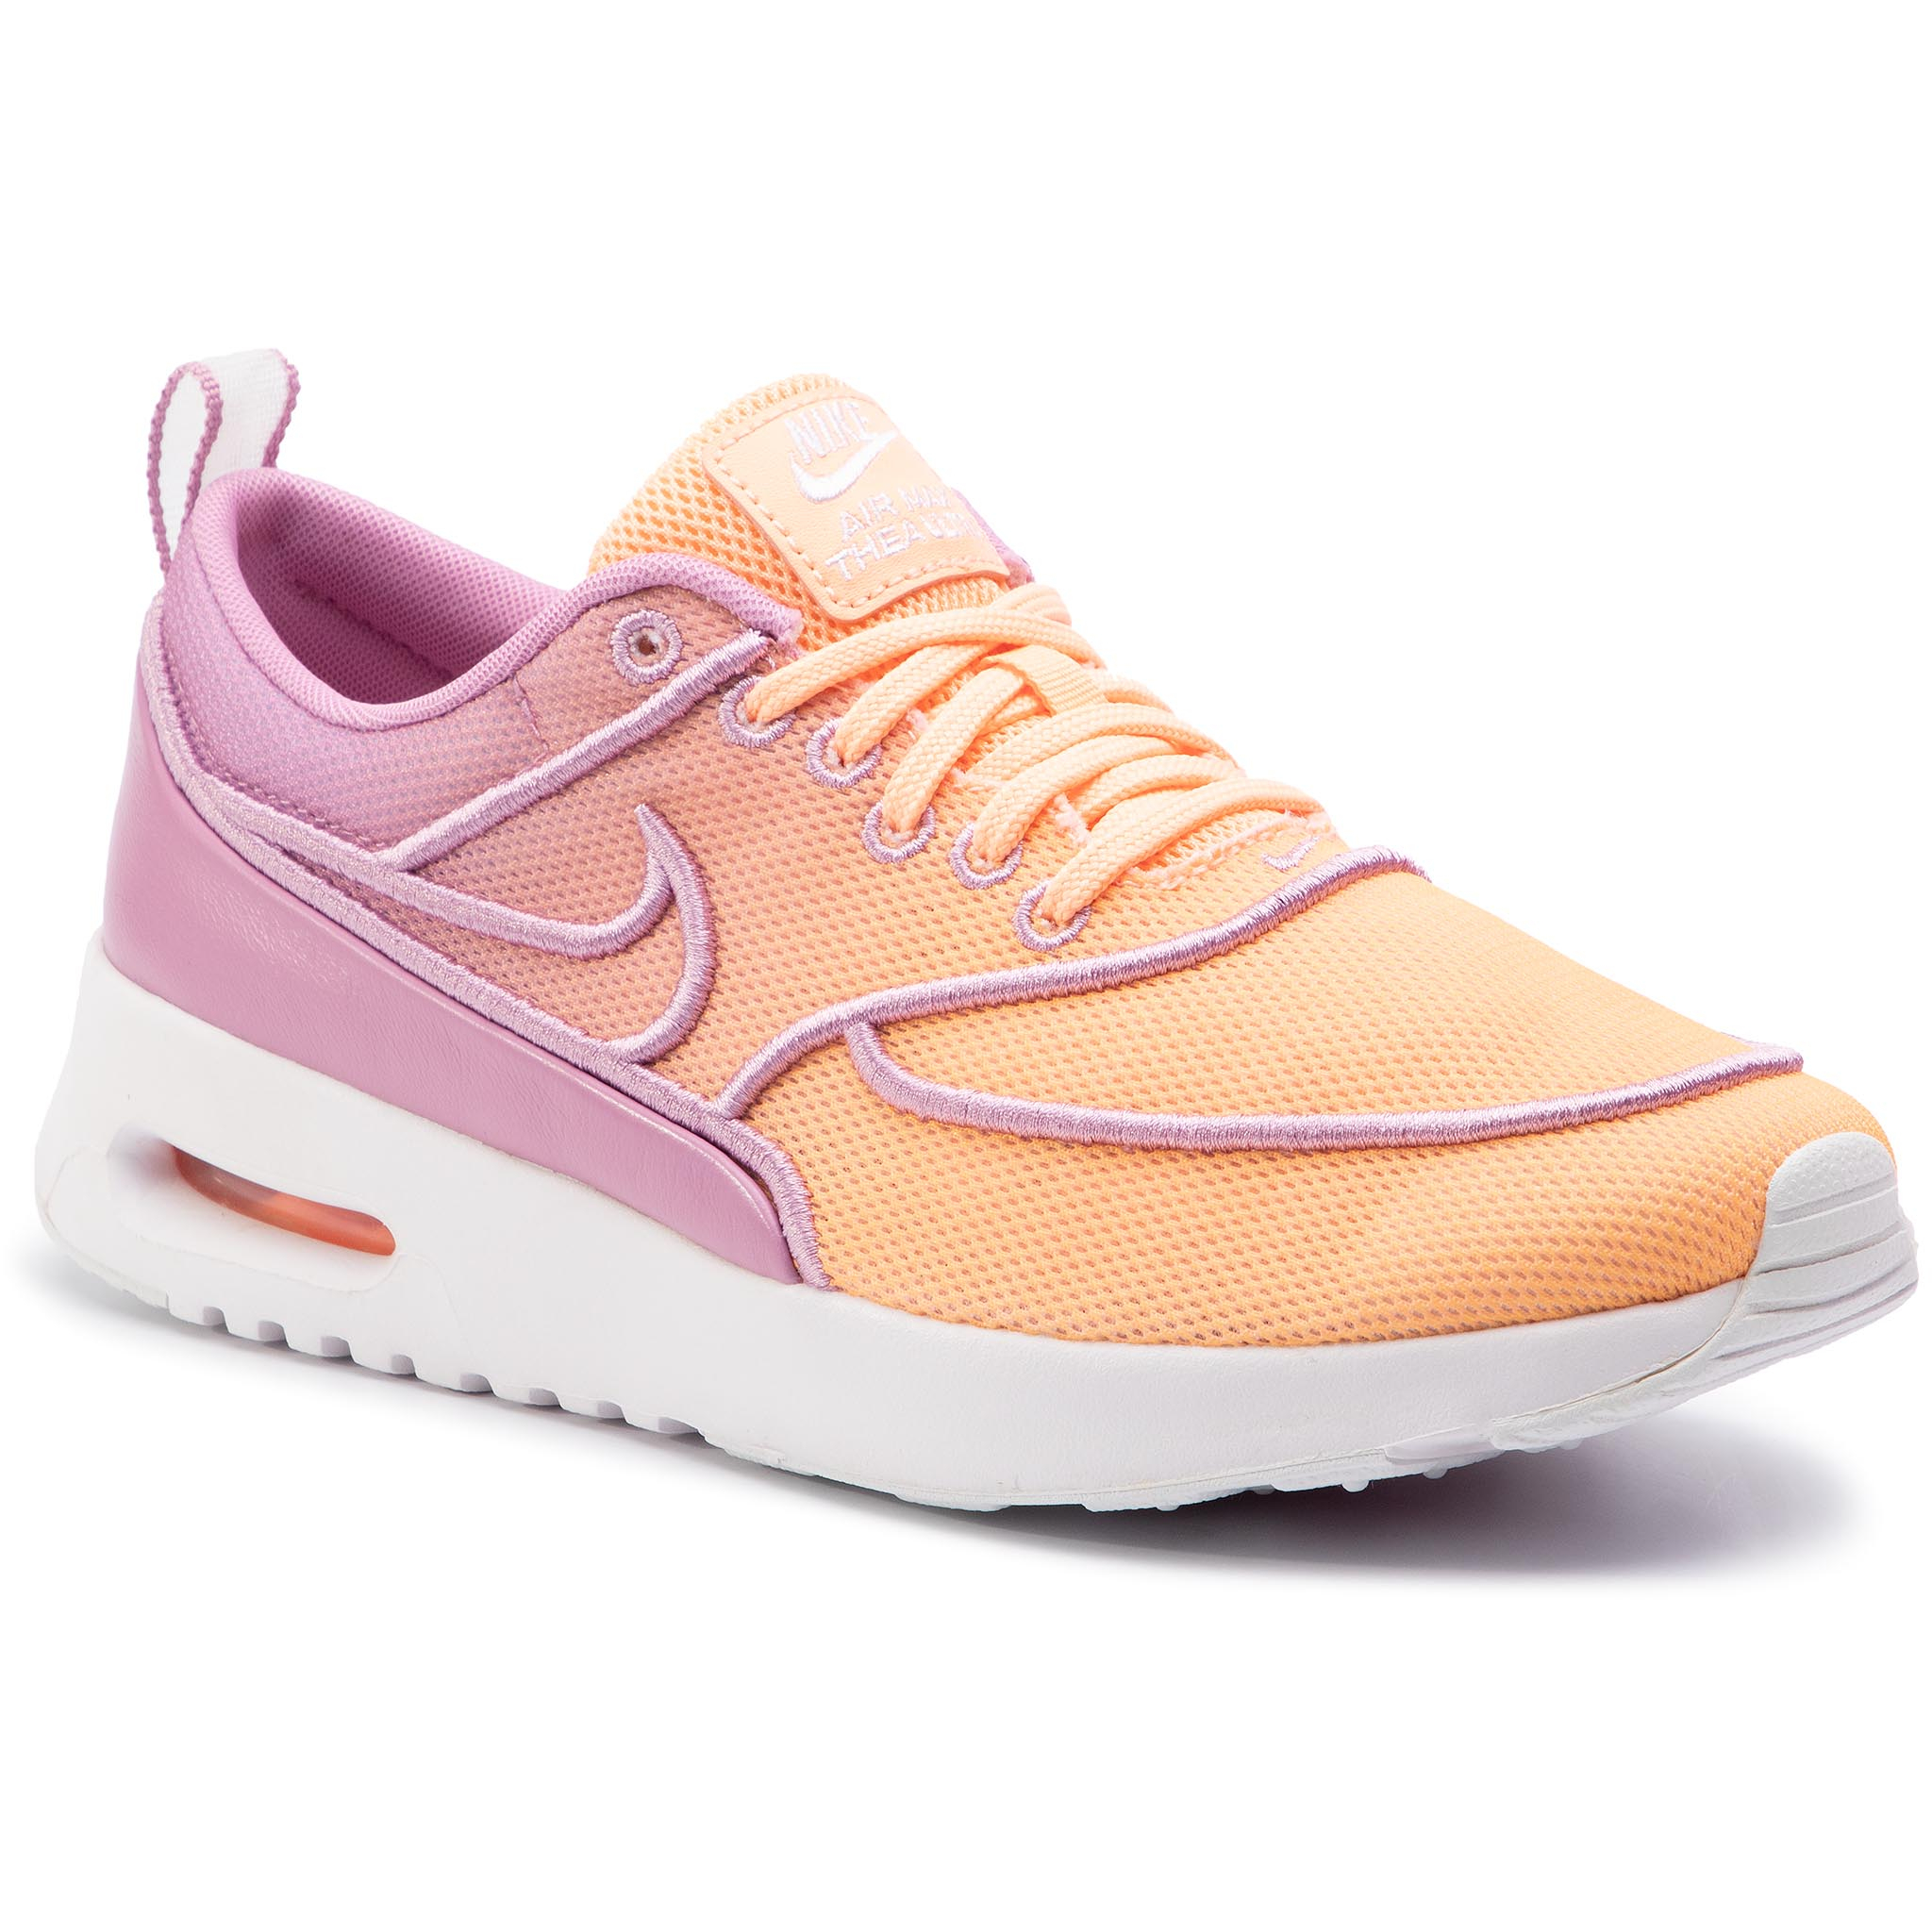 Topánky NIKE - Air Max Thea Ultra Si 881119 800 Sunset Glow/Sunset Glow/Orchid